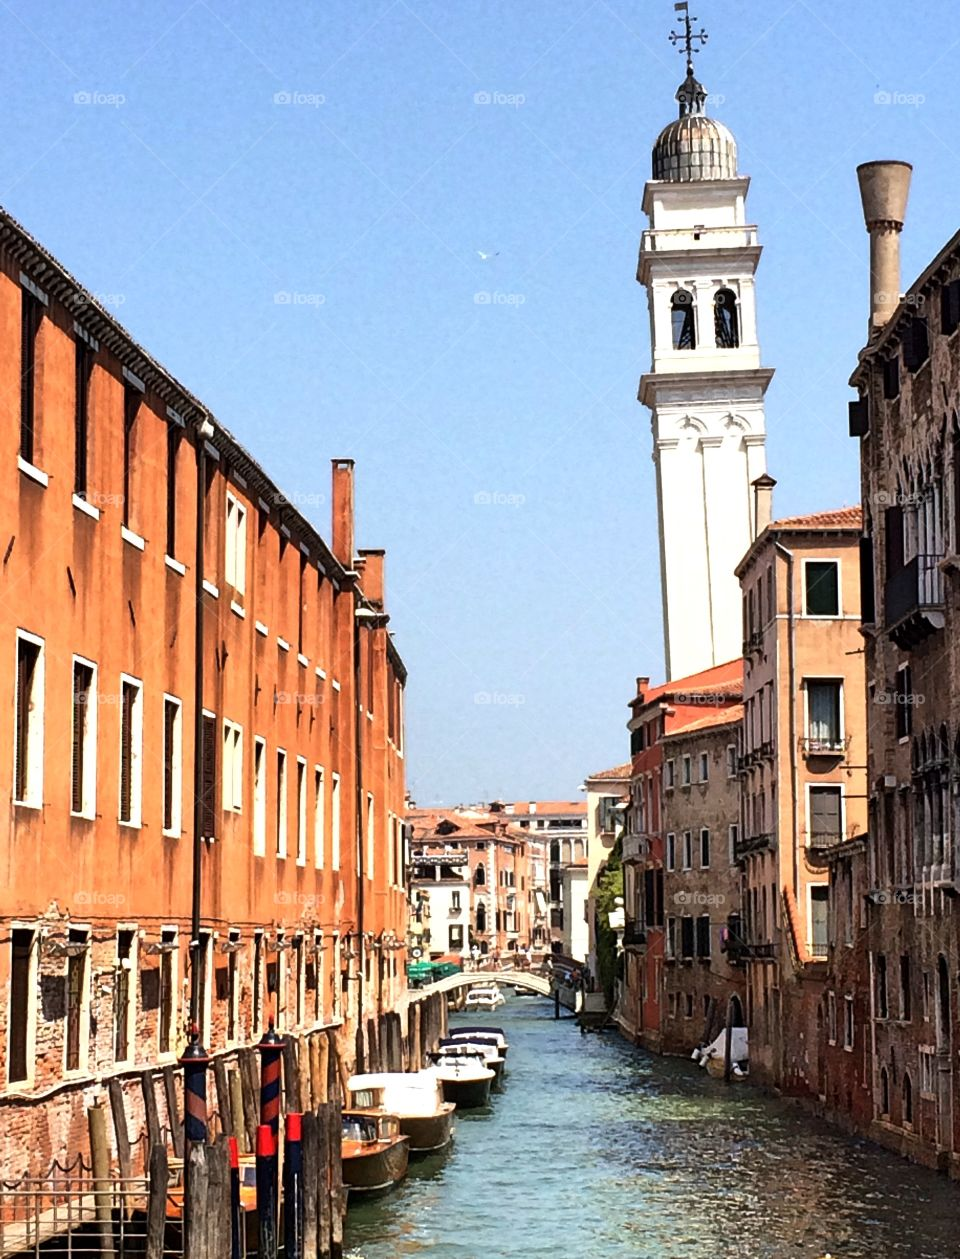 Summer in Venice. View of canal and historic buildings in Venice, Italy